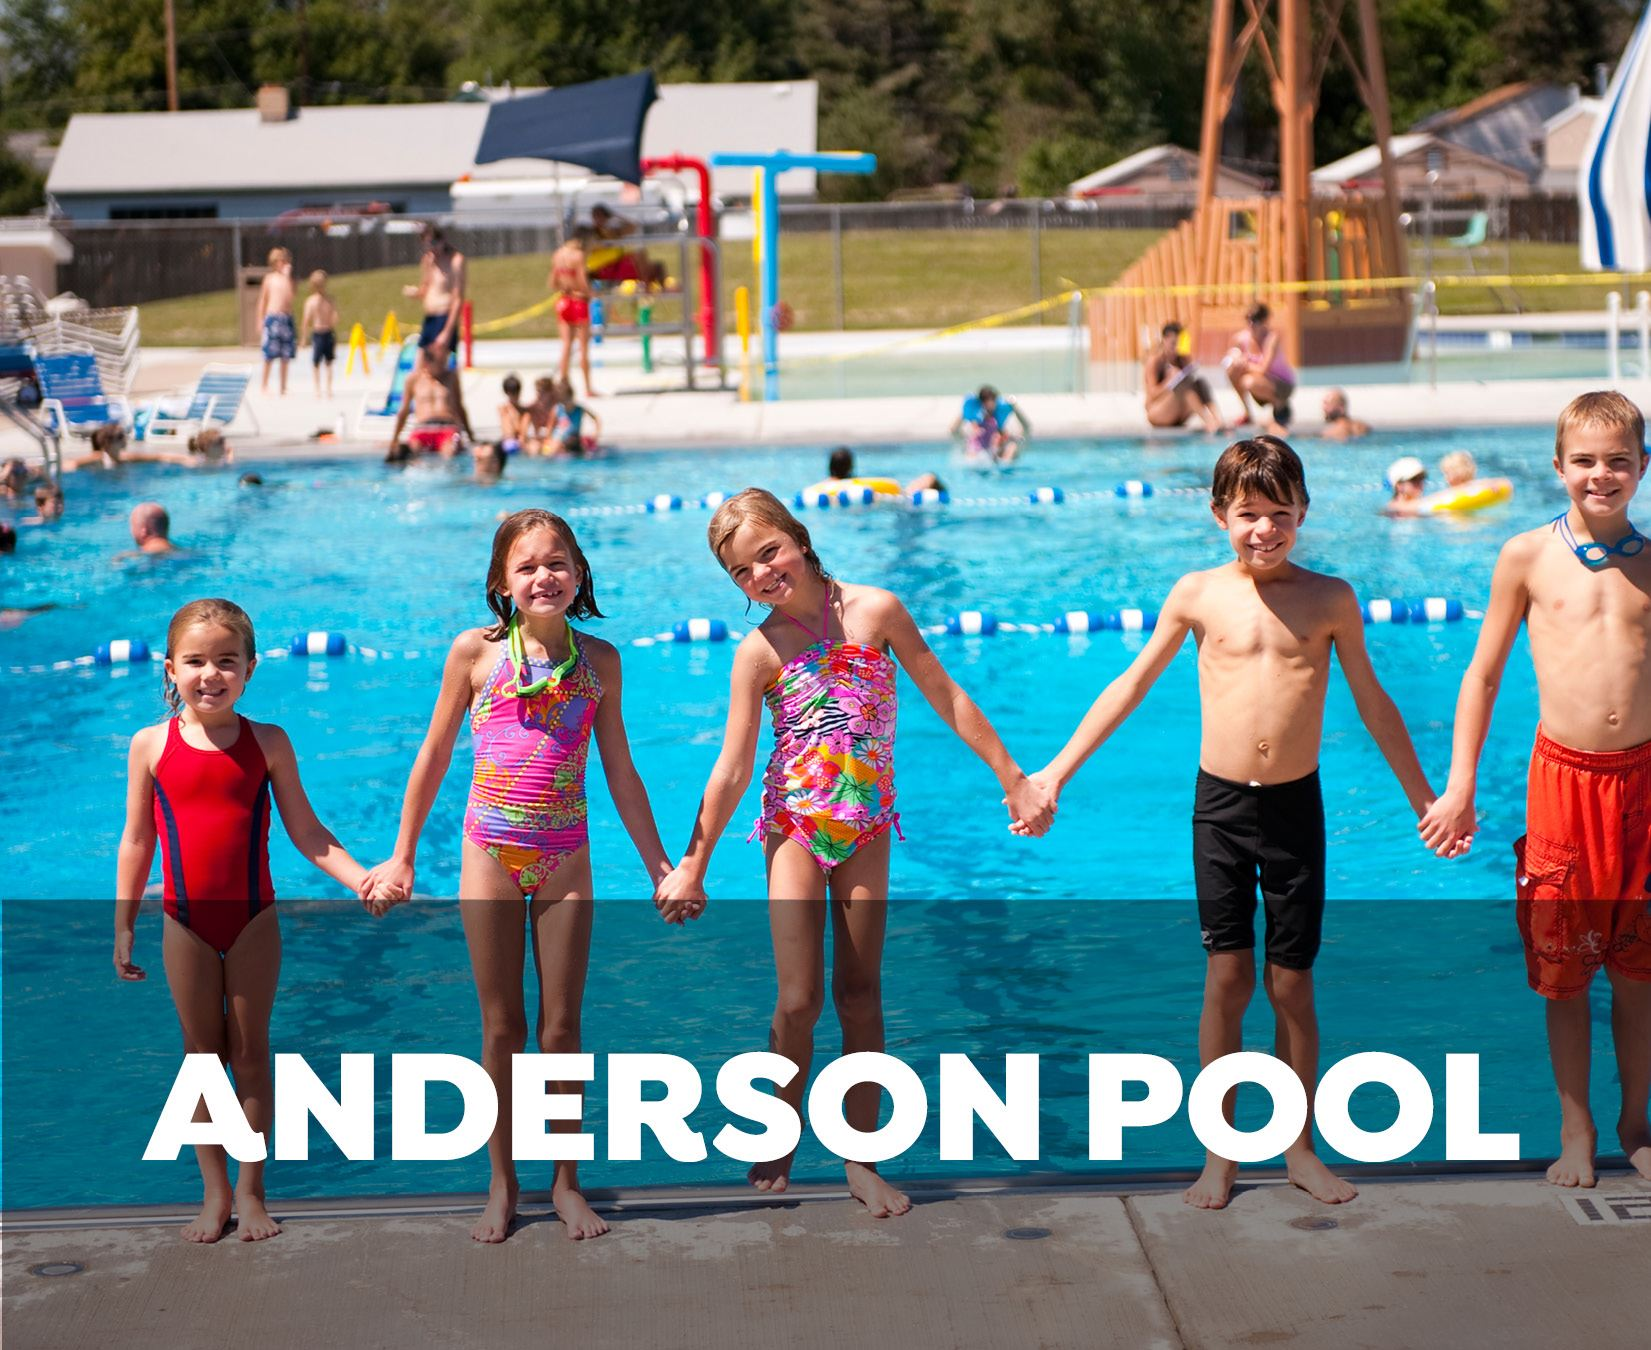 Anderson Pool - kids holding hands on pool deck